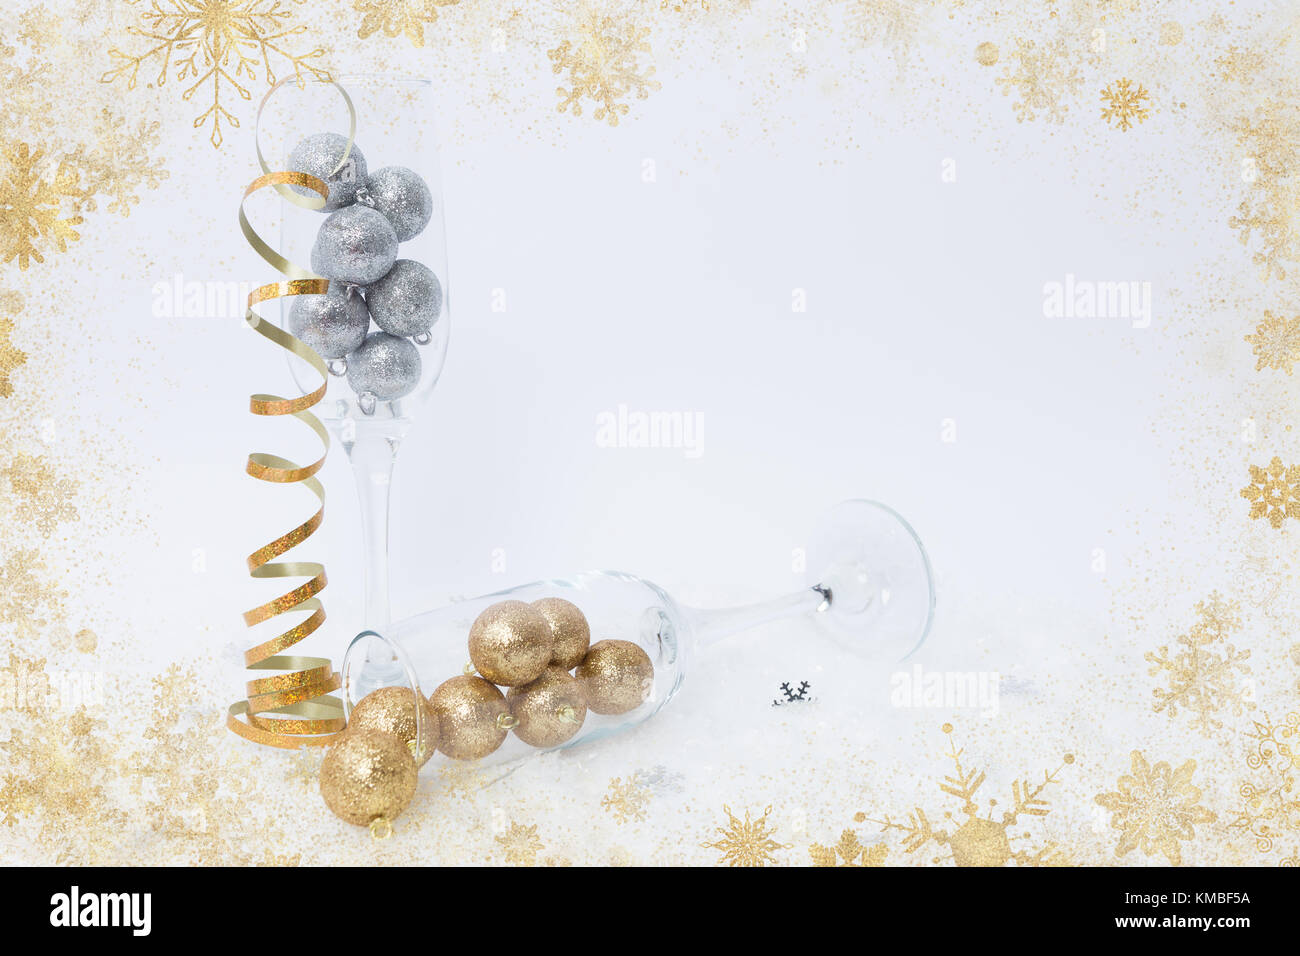 creative new year celebration concept with champagne glasses on fake snow and golden tinsel stock